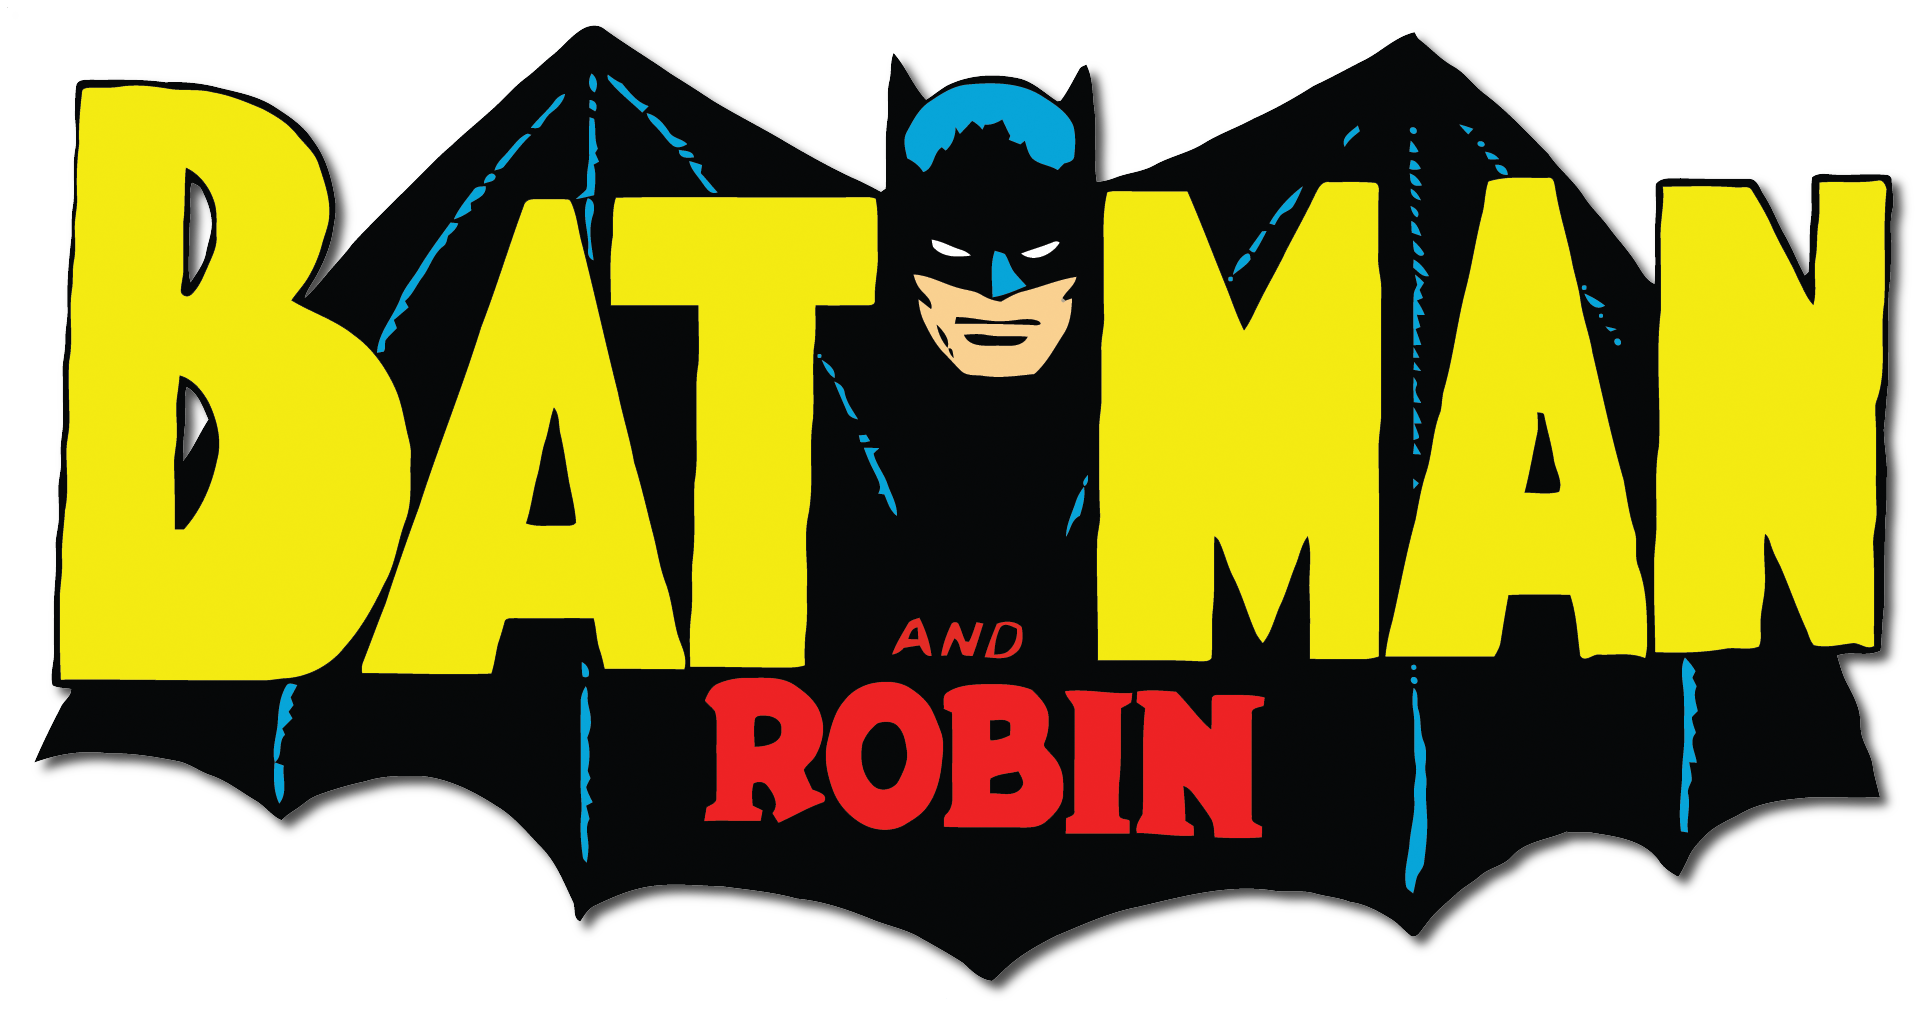 Batman and robin movie logo png. Image classic by bean